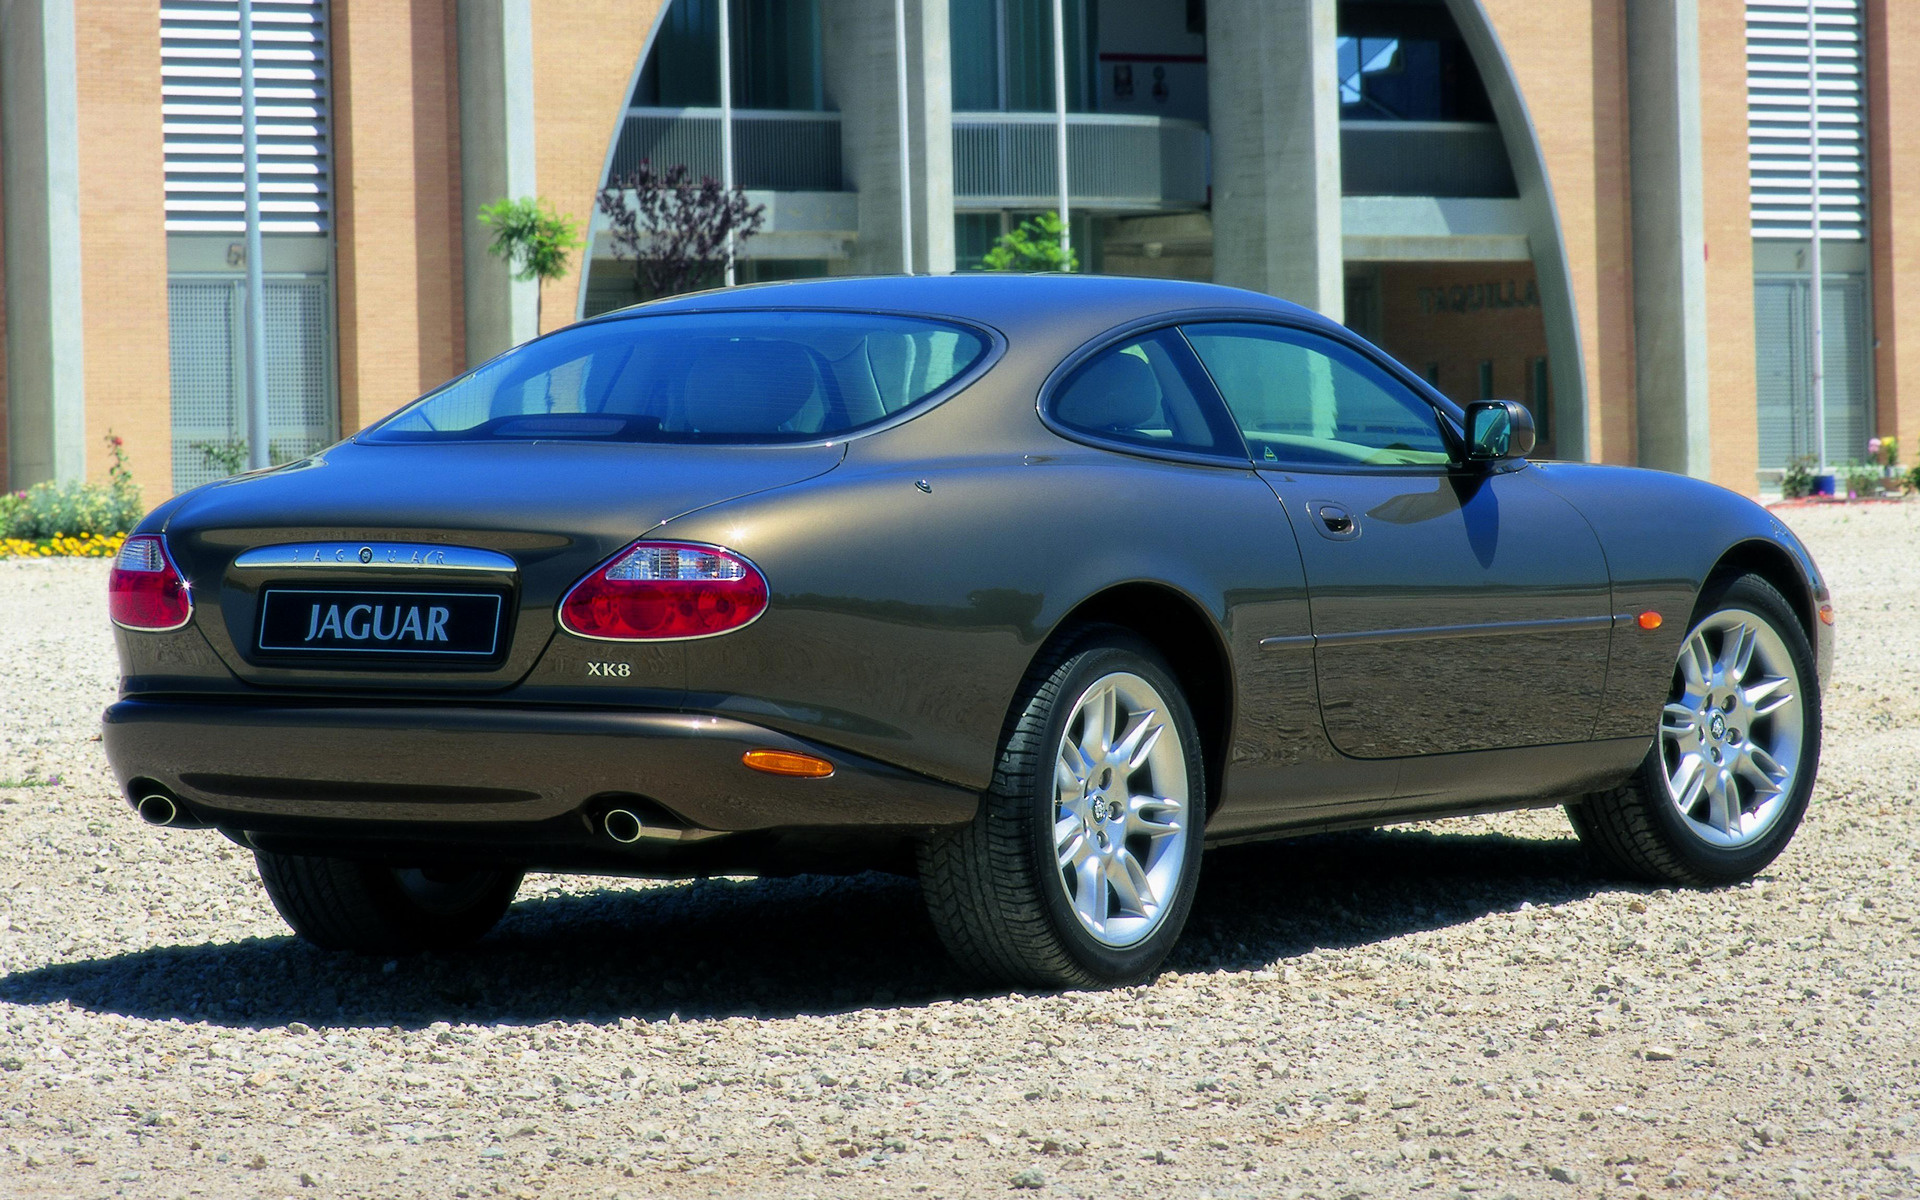 Jaguar XK8 Coupe (1996) Wallpapers and HD Images - Car Pixel